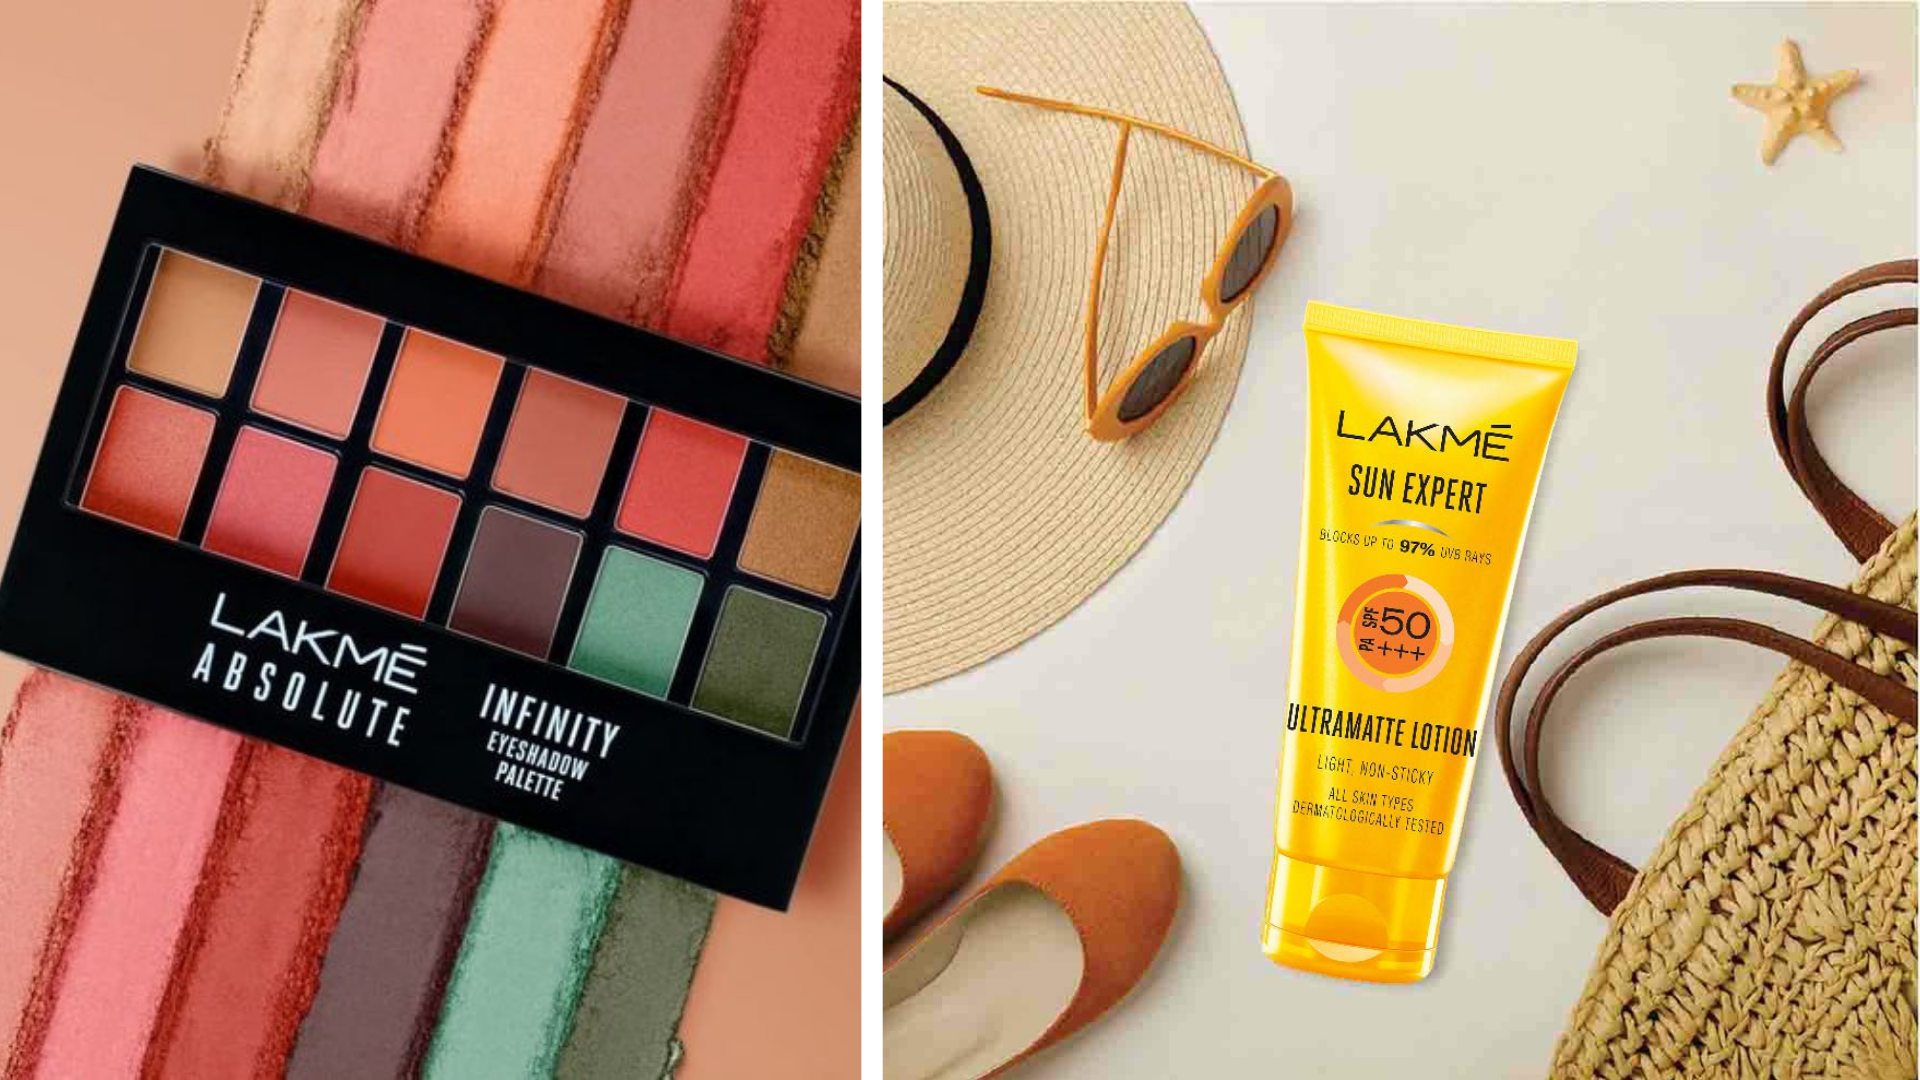 Why Lakme Has Dominated The Indian Beauty Market For 3 Decades